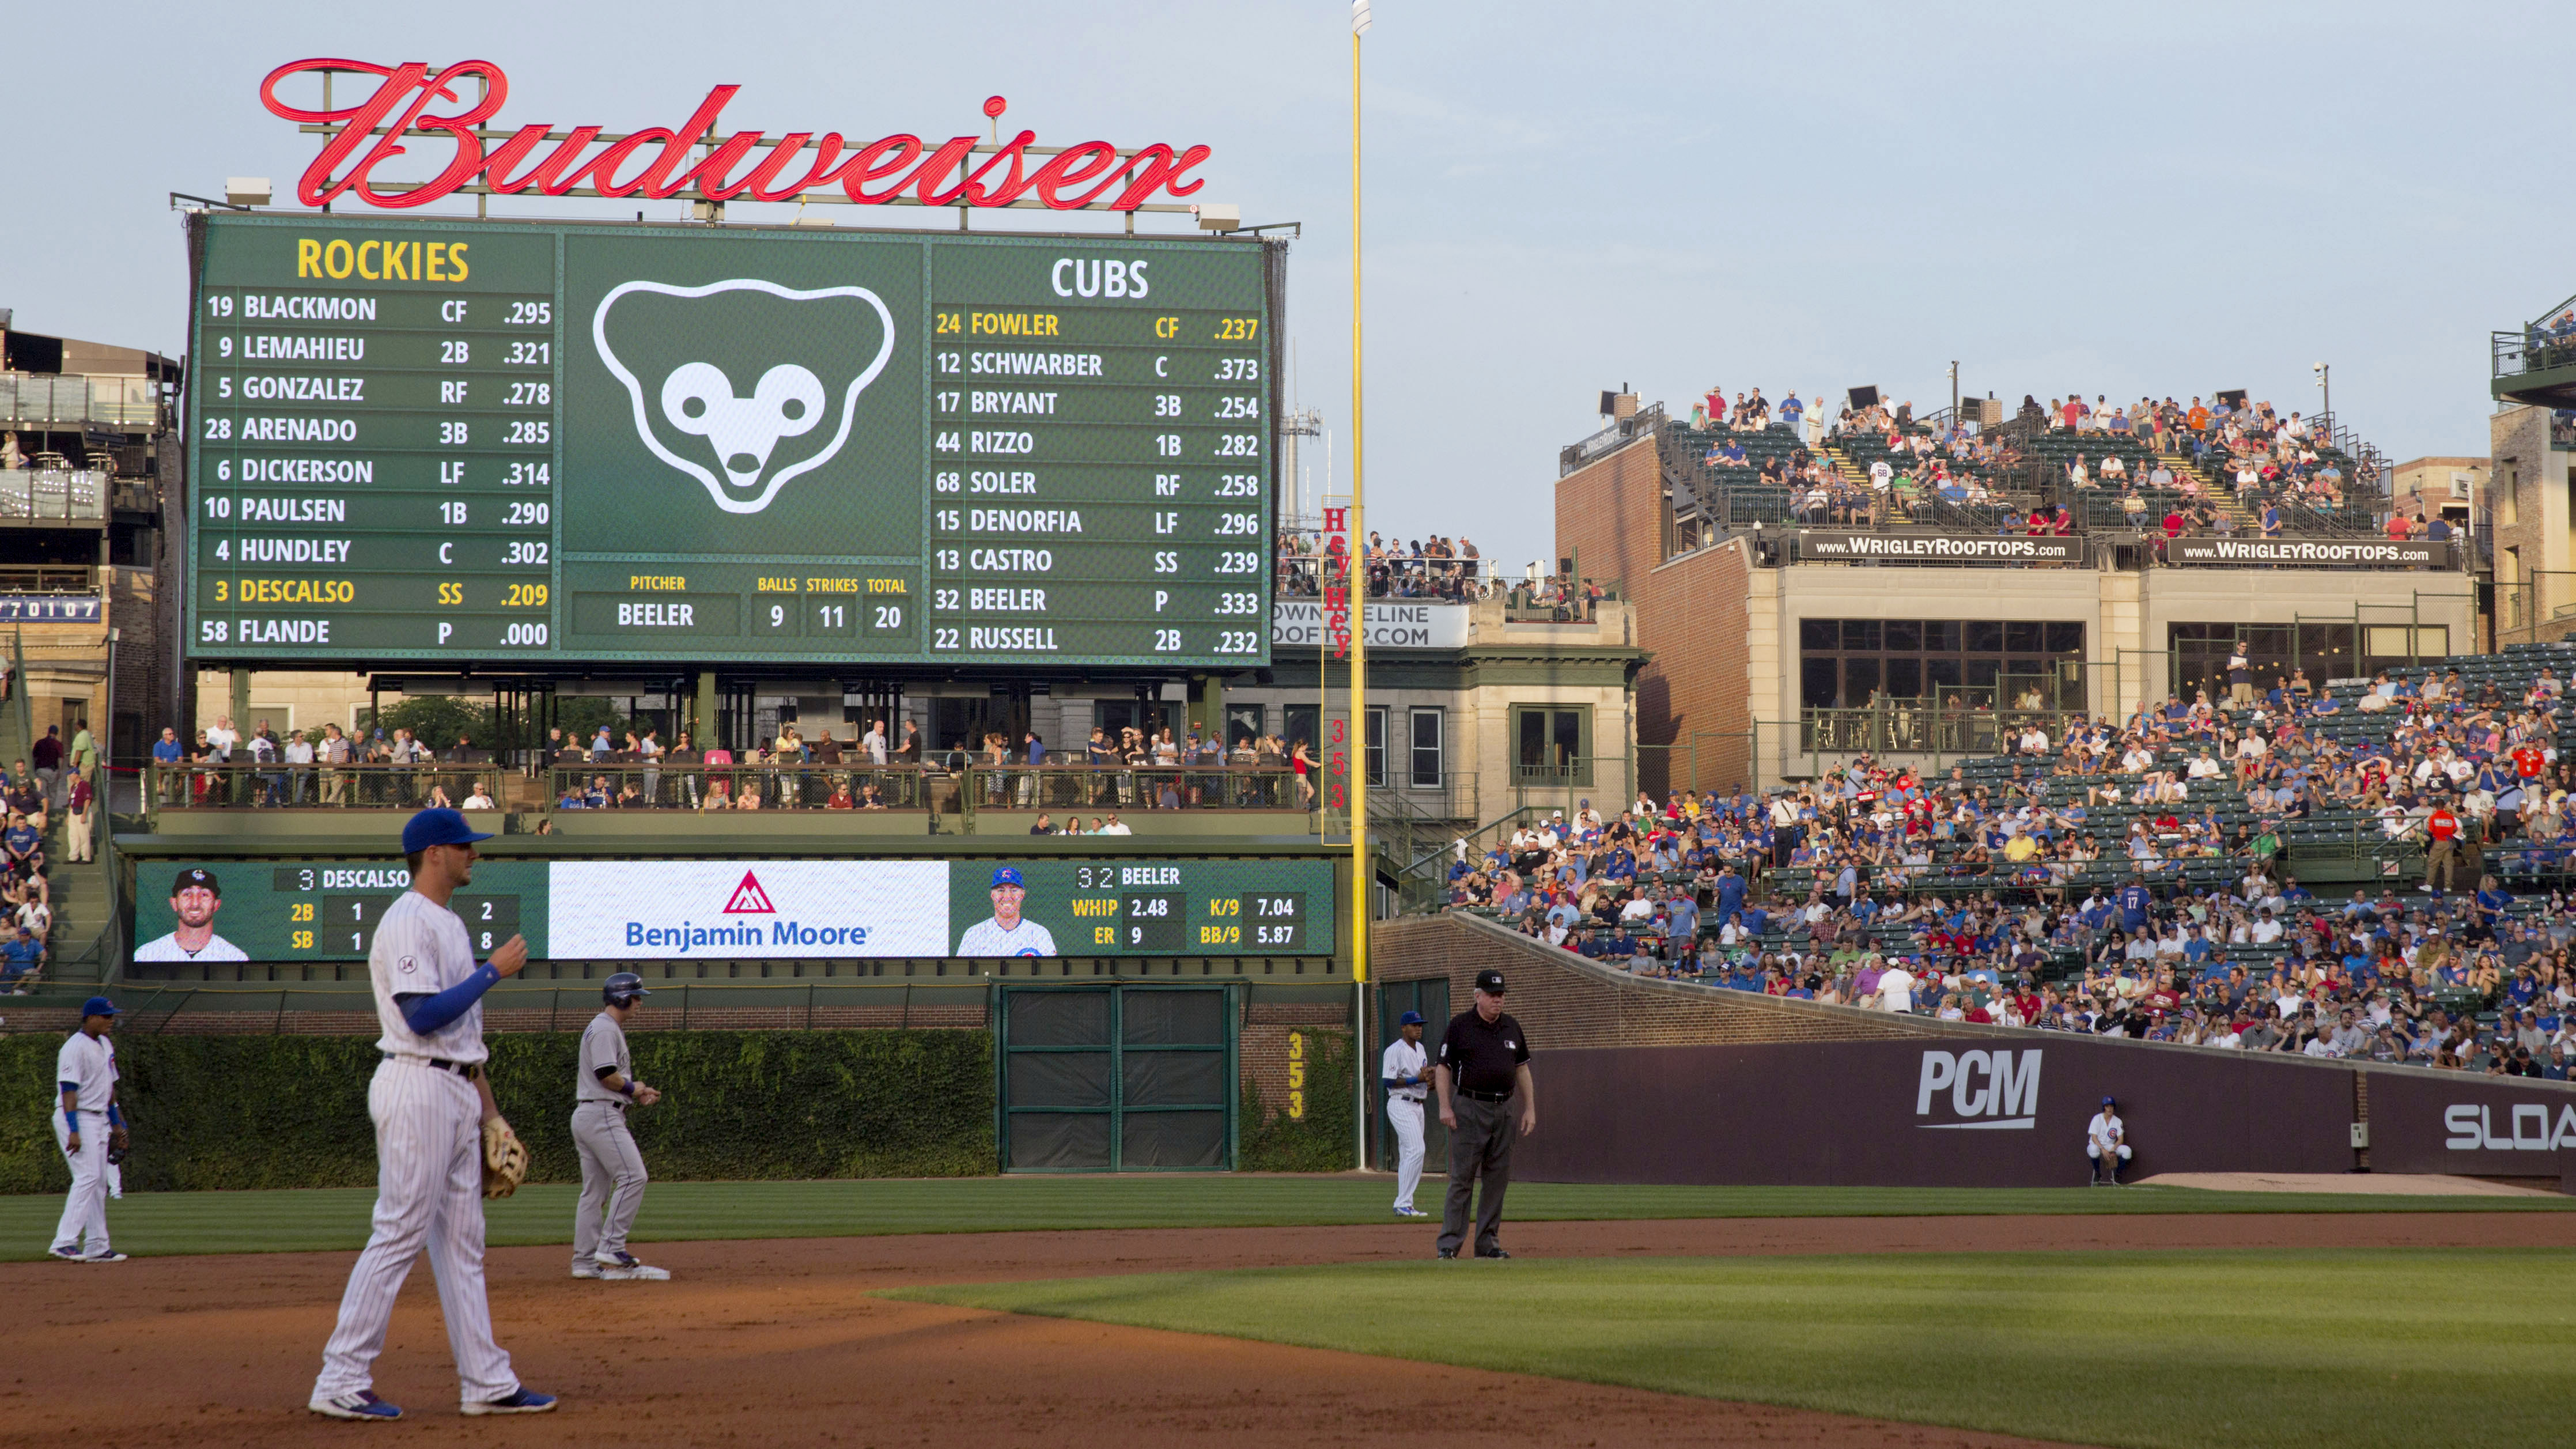 In this July 28, 2015 photo, fans at a Wrigley Rooftops' building down the right-field line outside Wrigley Field watch players during the first inning of a baseball game between the Colorado Rockies and Chicago Cubs in Chicago. A $575 million transformat